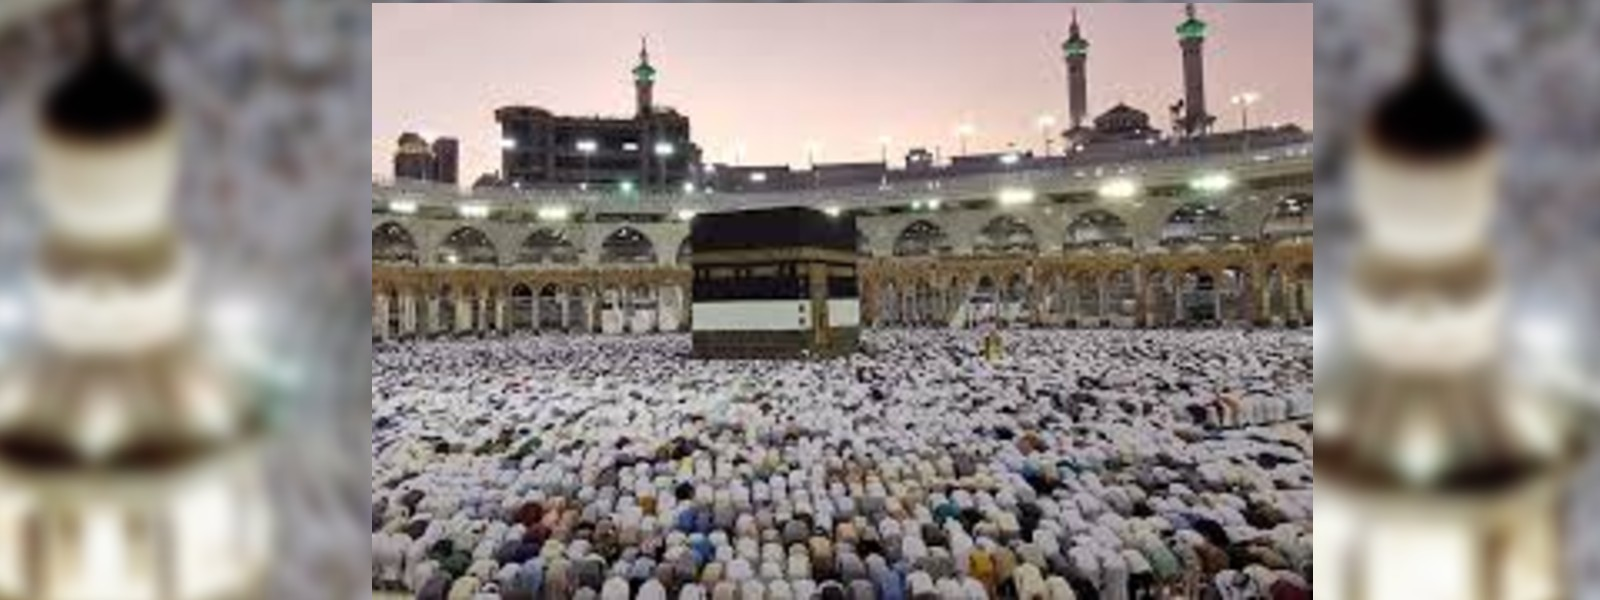 Saudi to ban foreign visitors from making Islamic pilgrimages or hajj